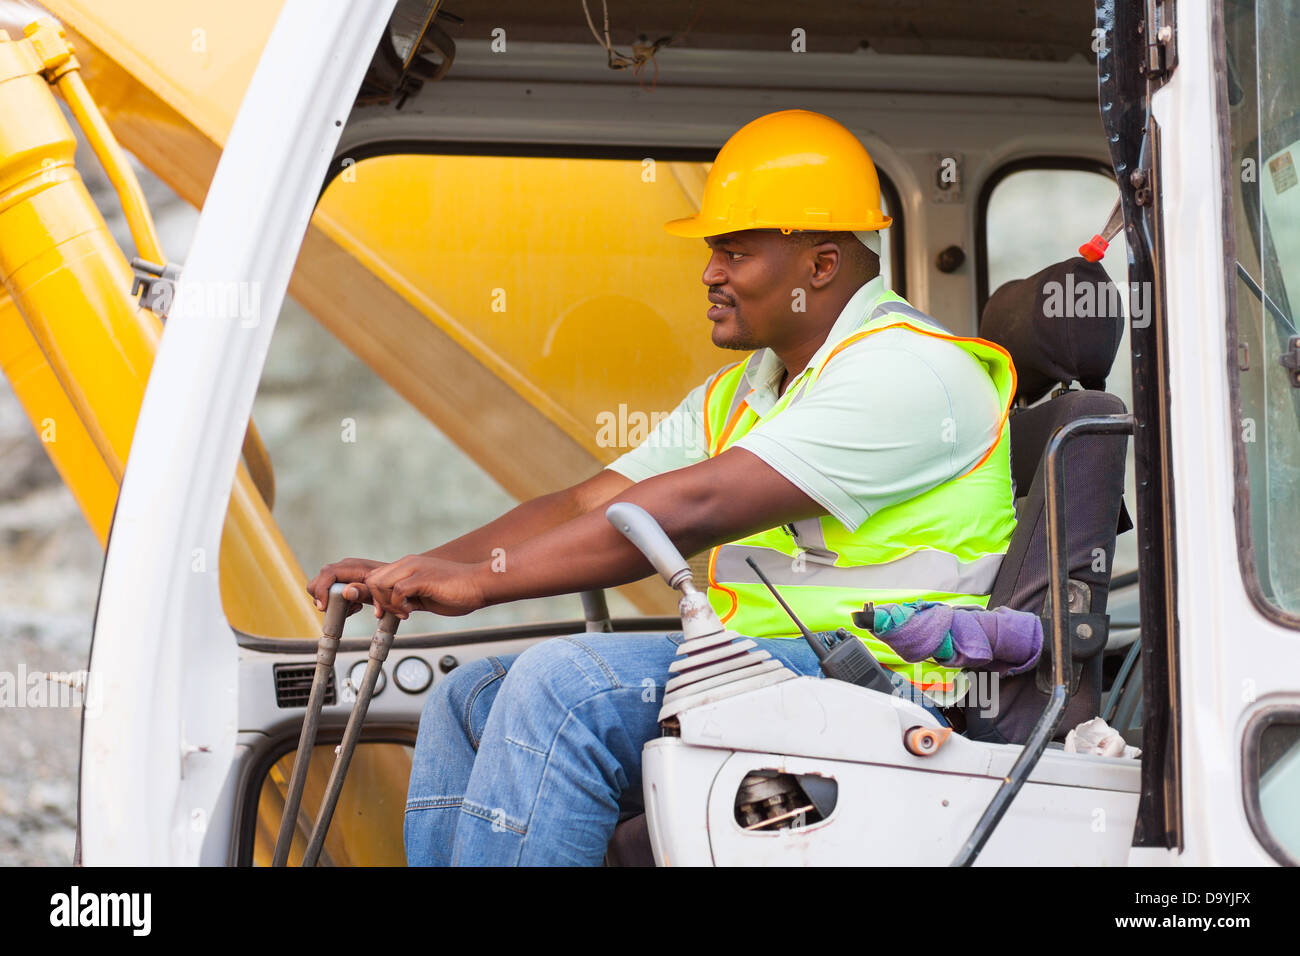 African American man operates excavator on building site - Stock Image